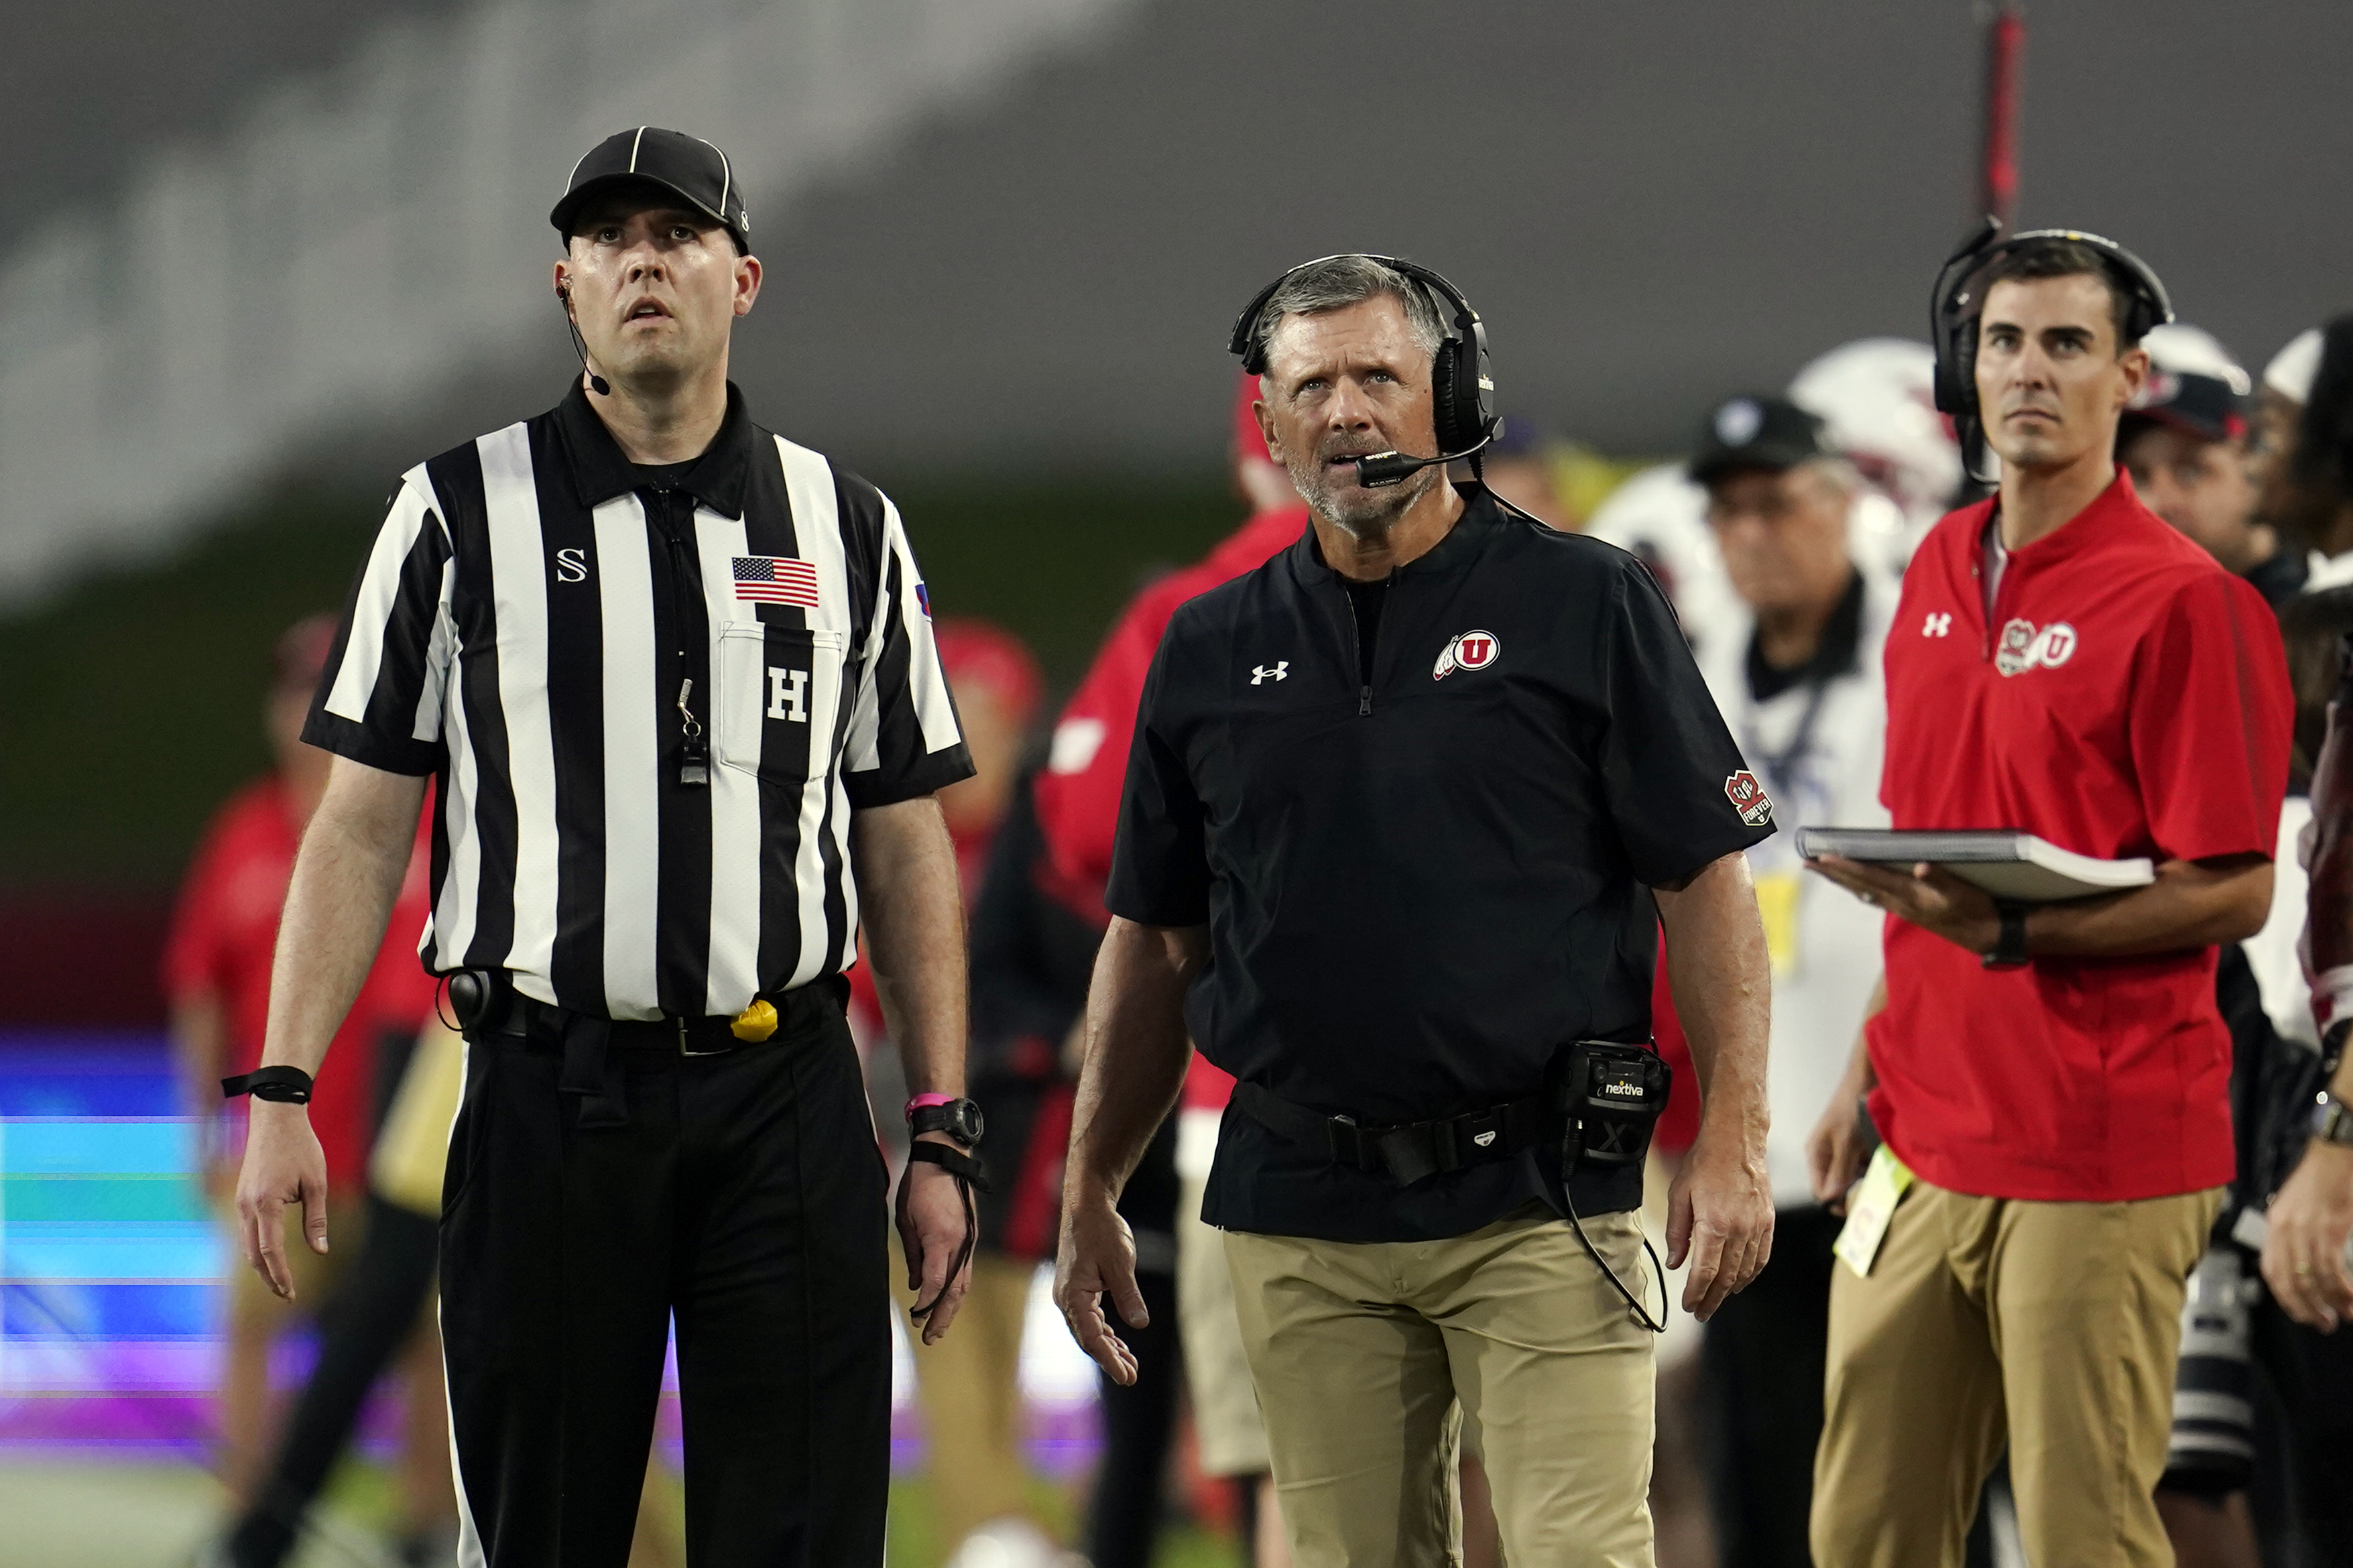 Utah head coach Kyle Whittingham stands next to a referee during game against Southern California Saturday, Oct. 9, 2021, in Los Angeles.